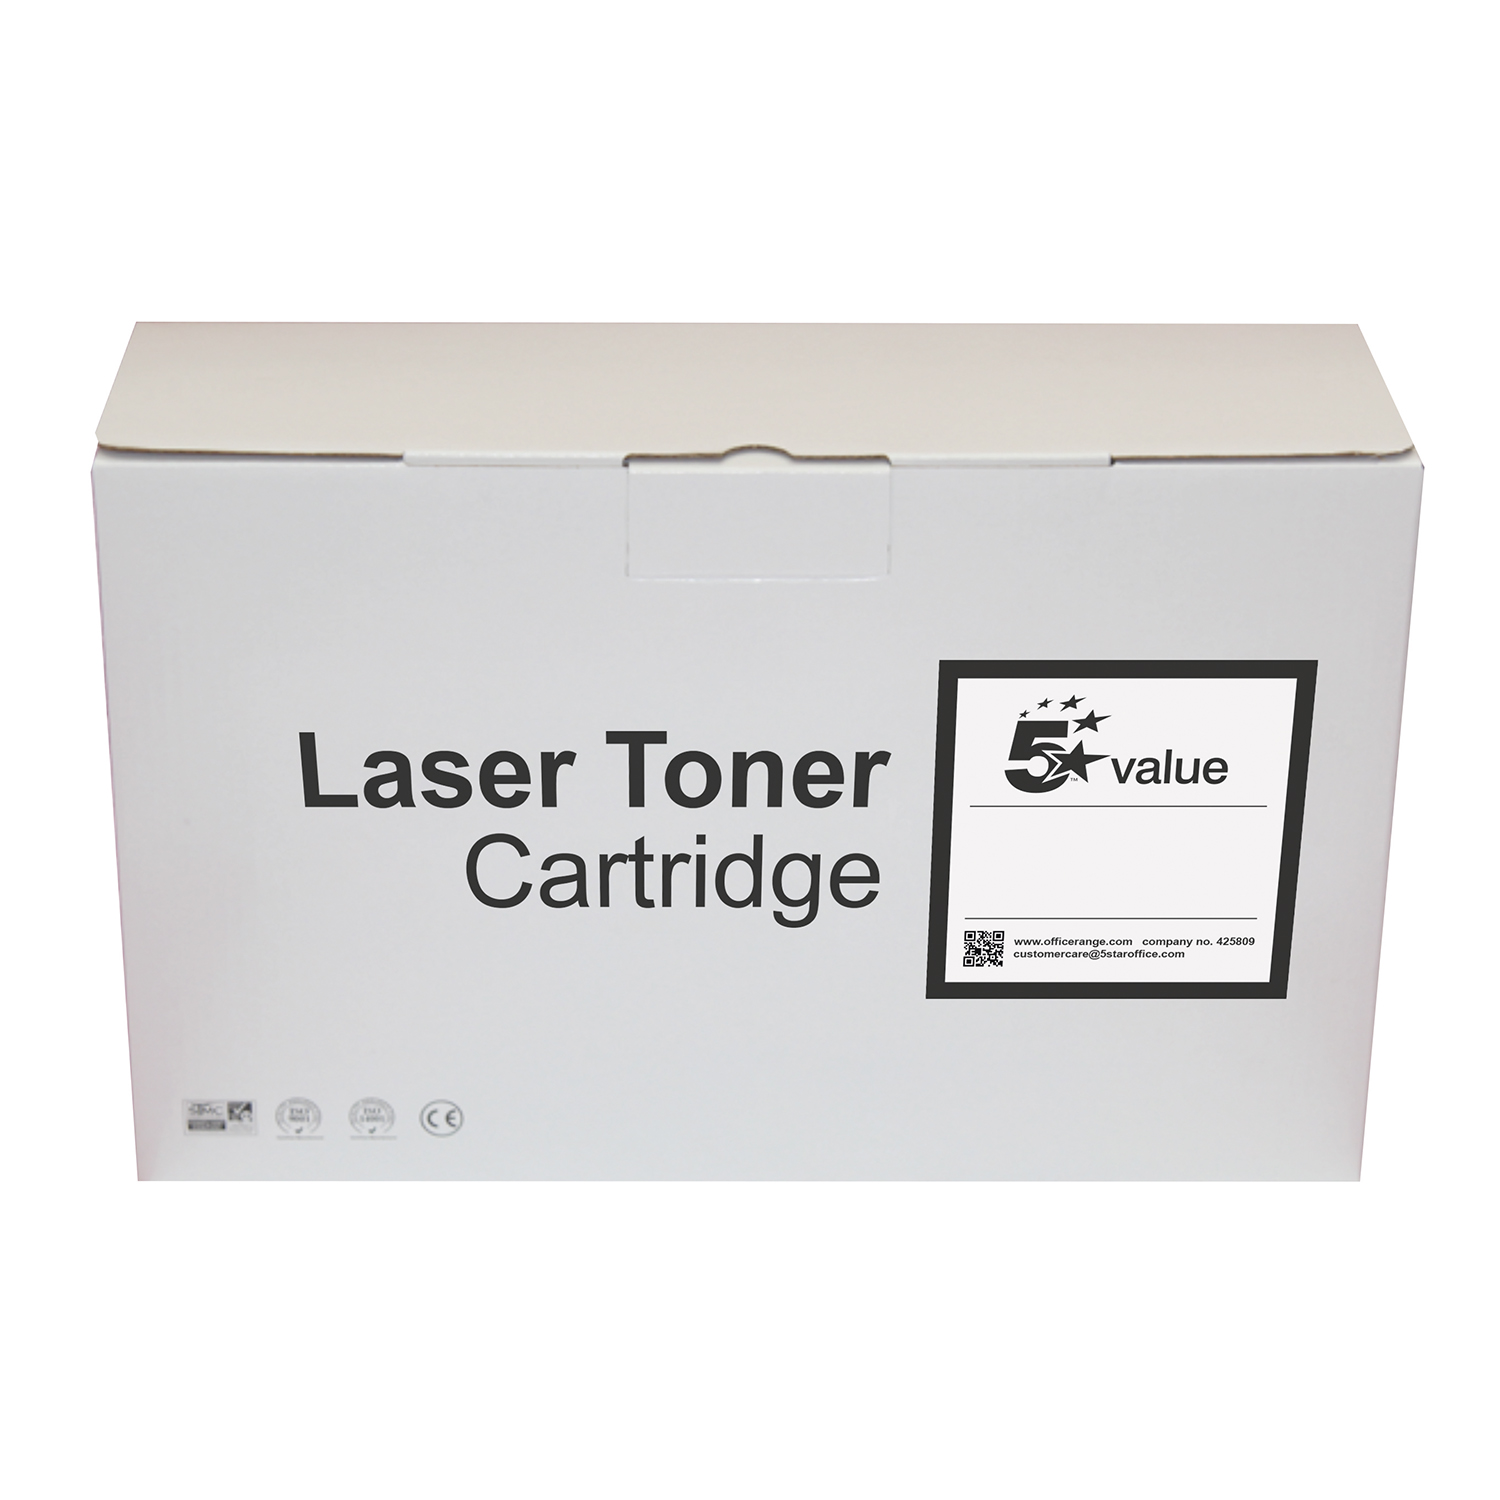 5 Star Value HP 49A Toner Cartridge Black Q5949A